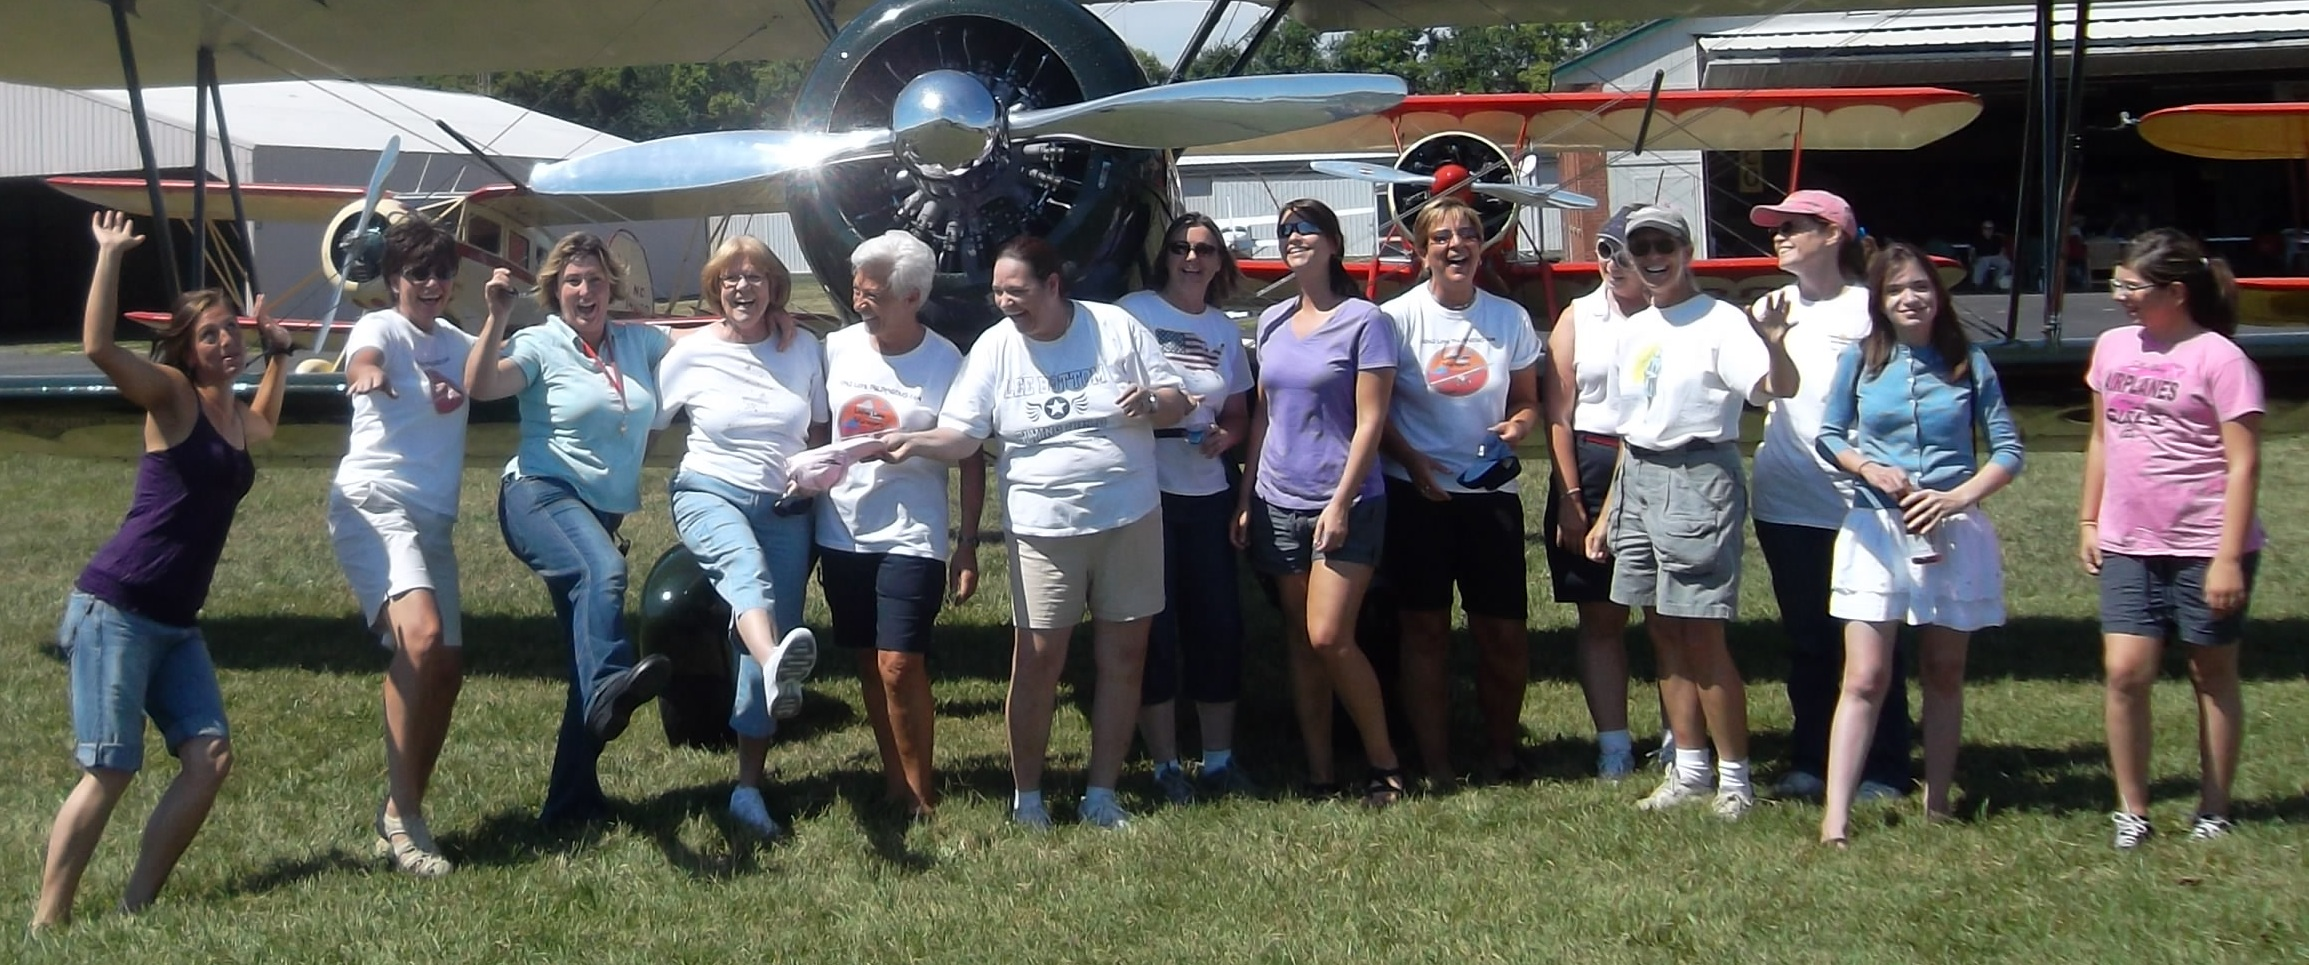 Lady Taildraggers 2011 Fly-in Video!